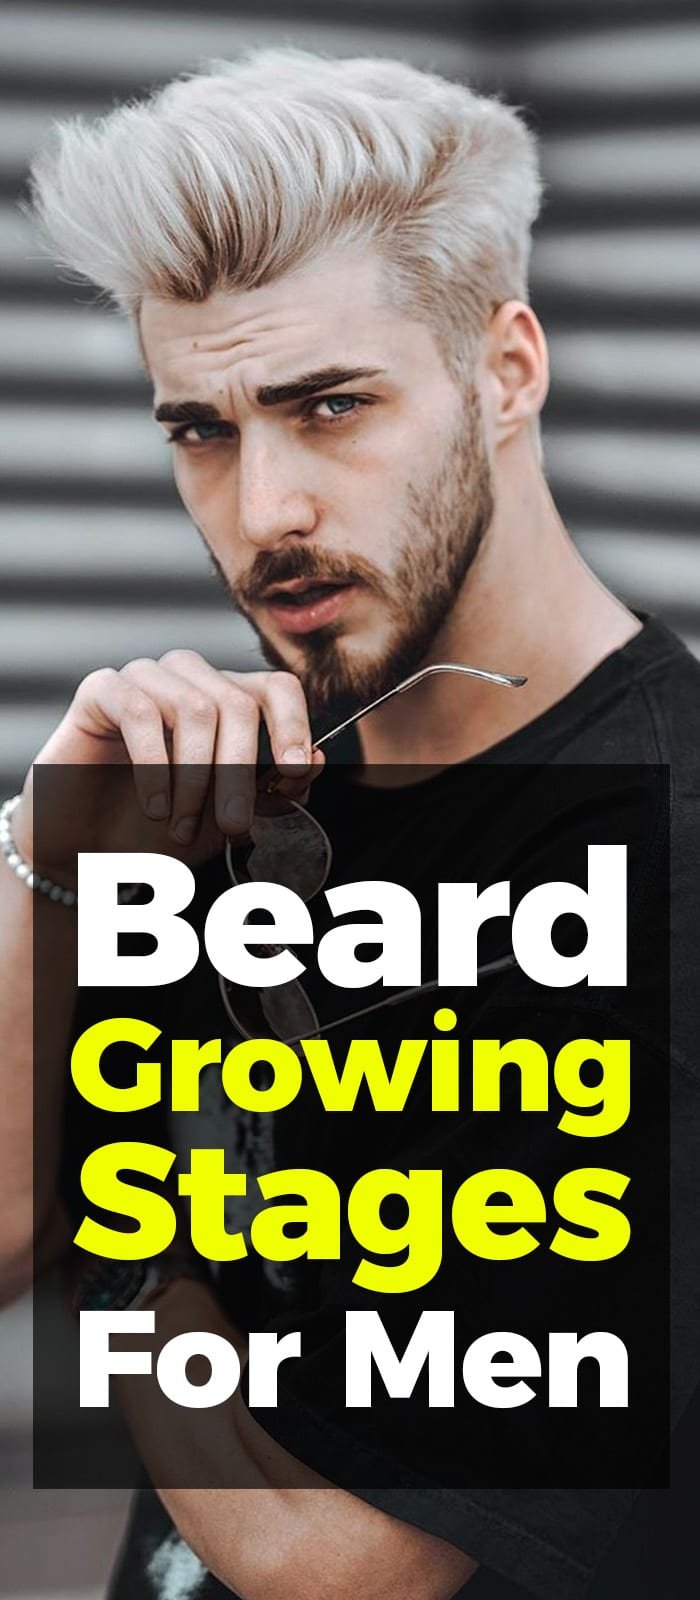 Beard Growing Stages